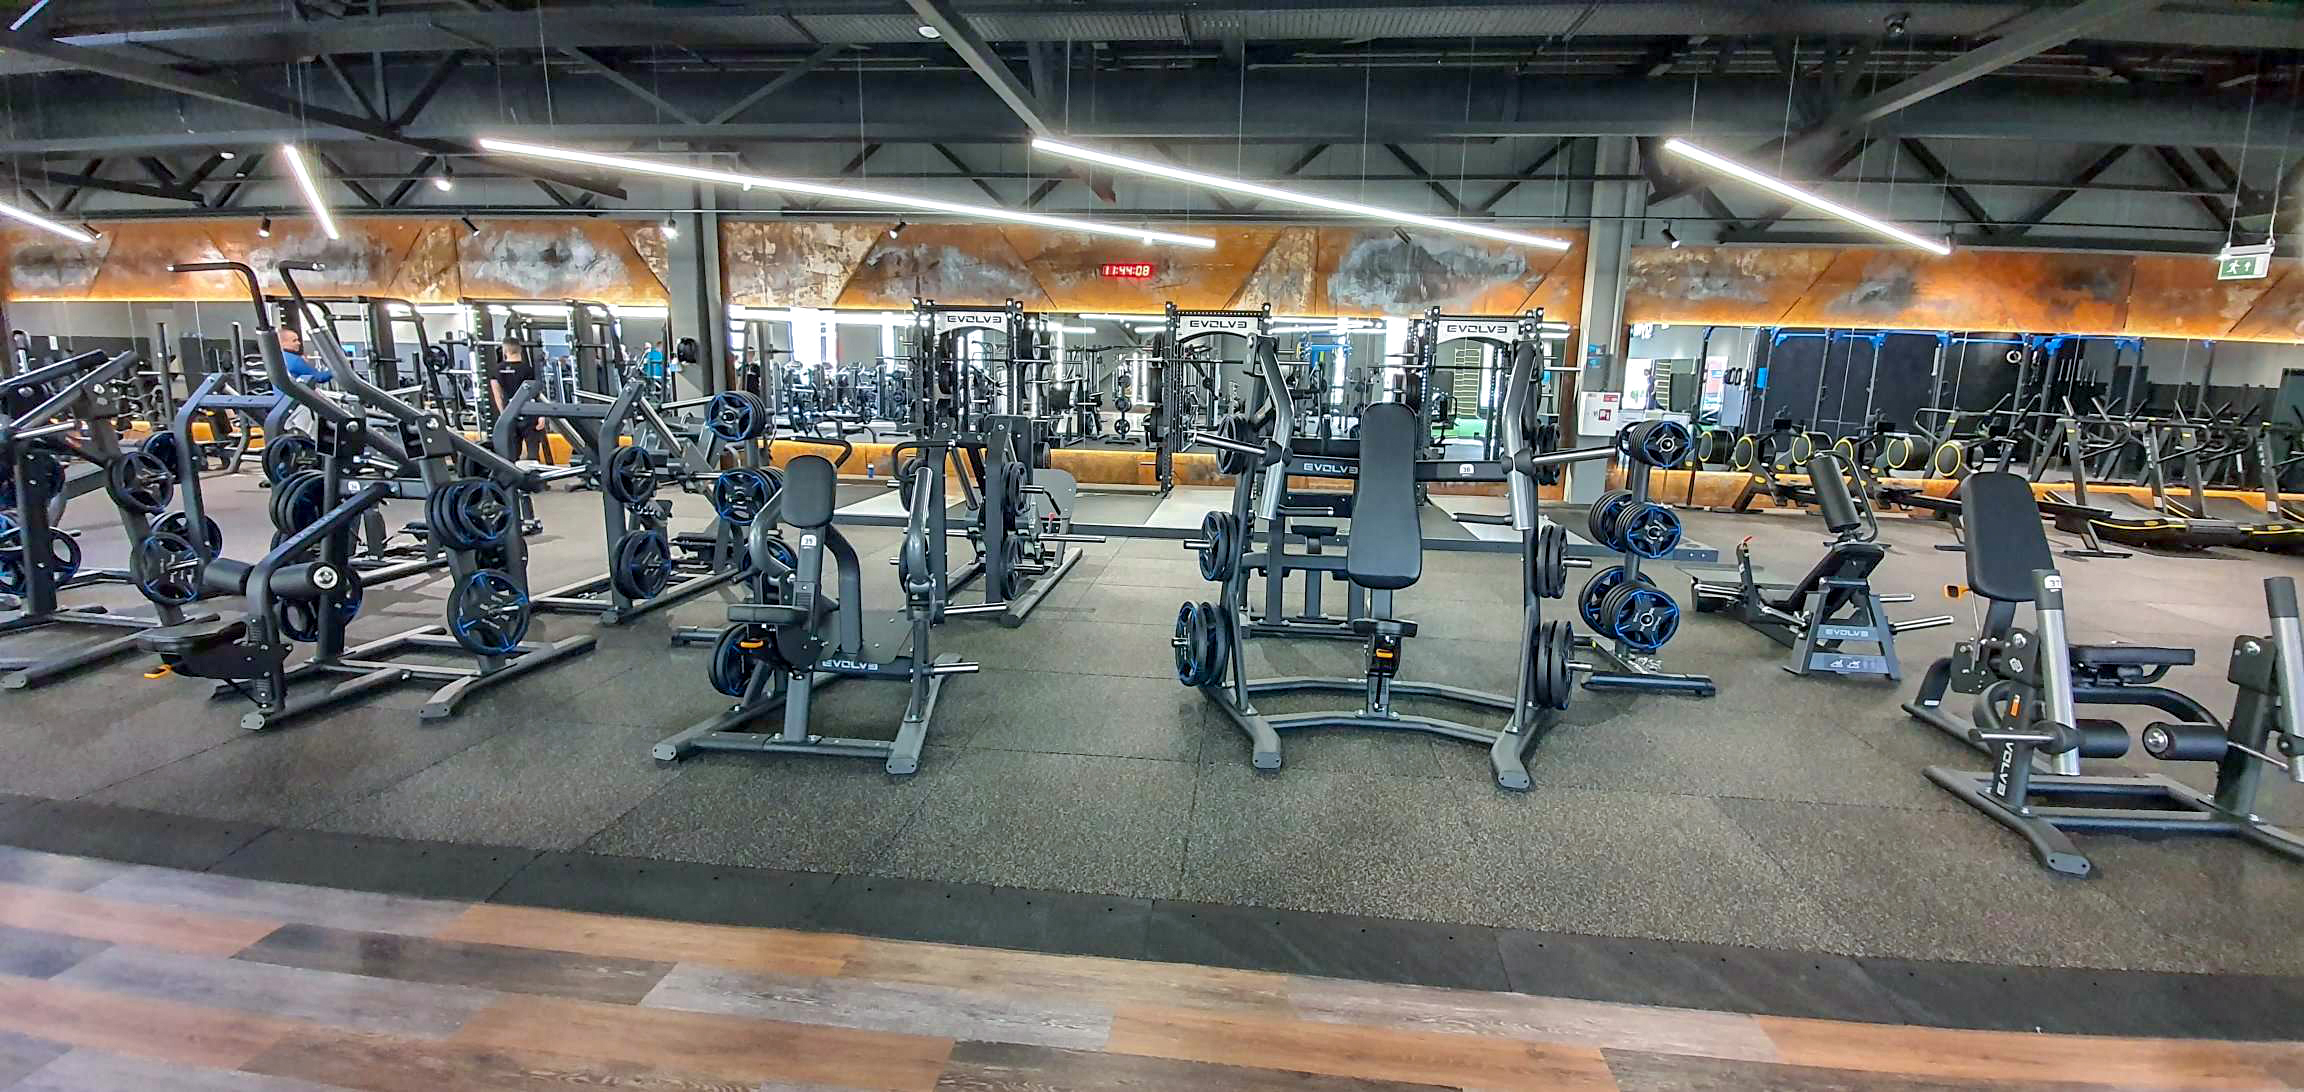 equipement-gym-montreal